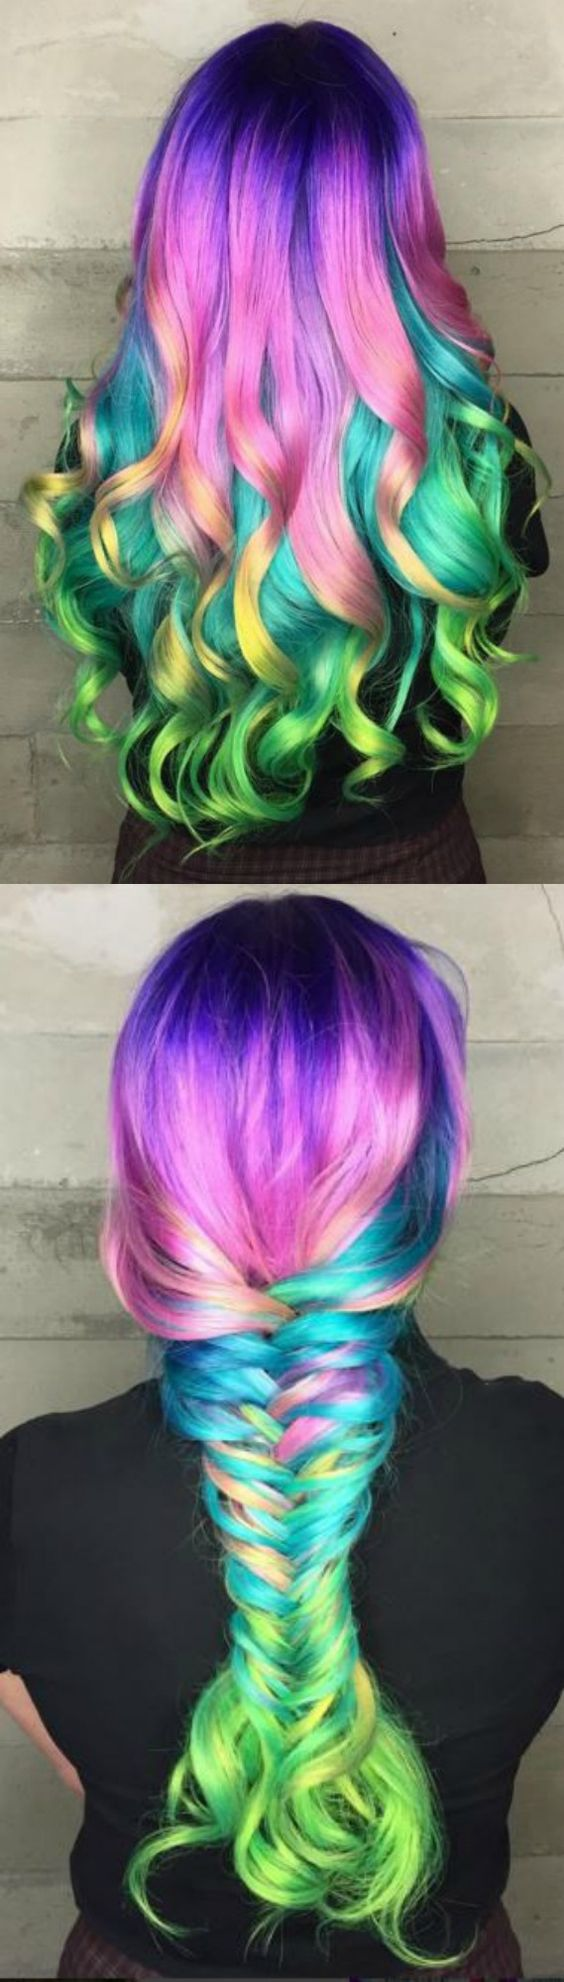 Collage Of Multi Colored Hair In Curls Amp Big Braid♡